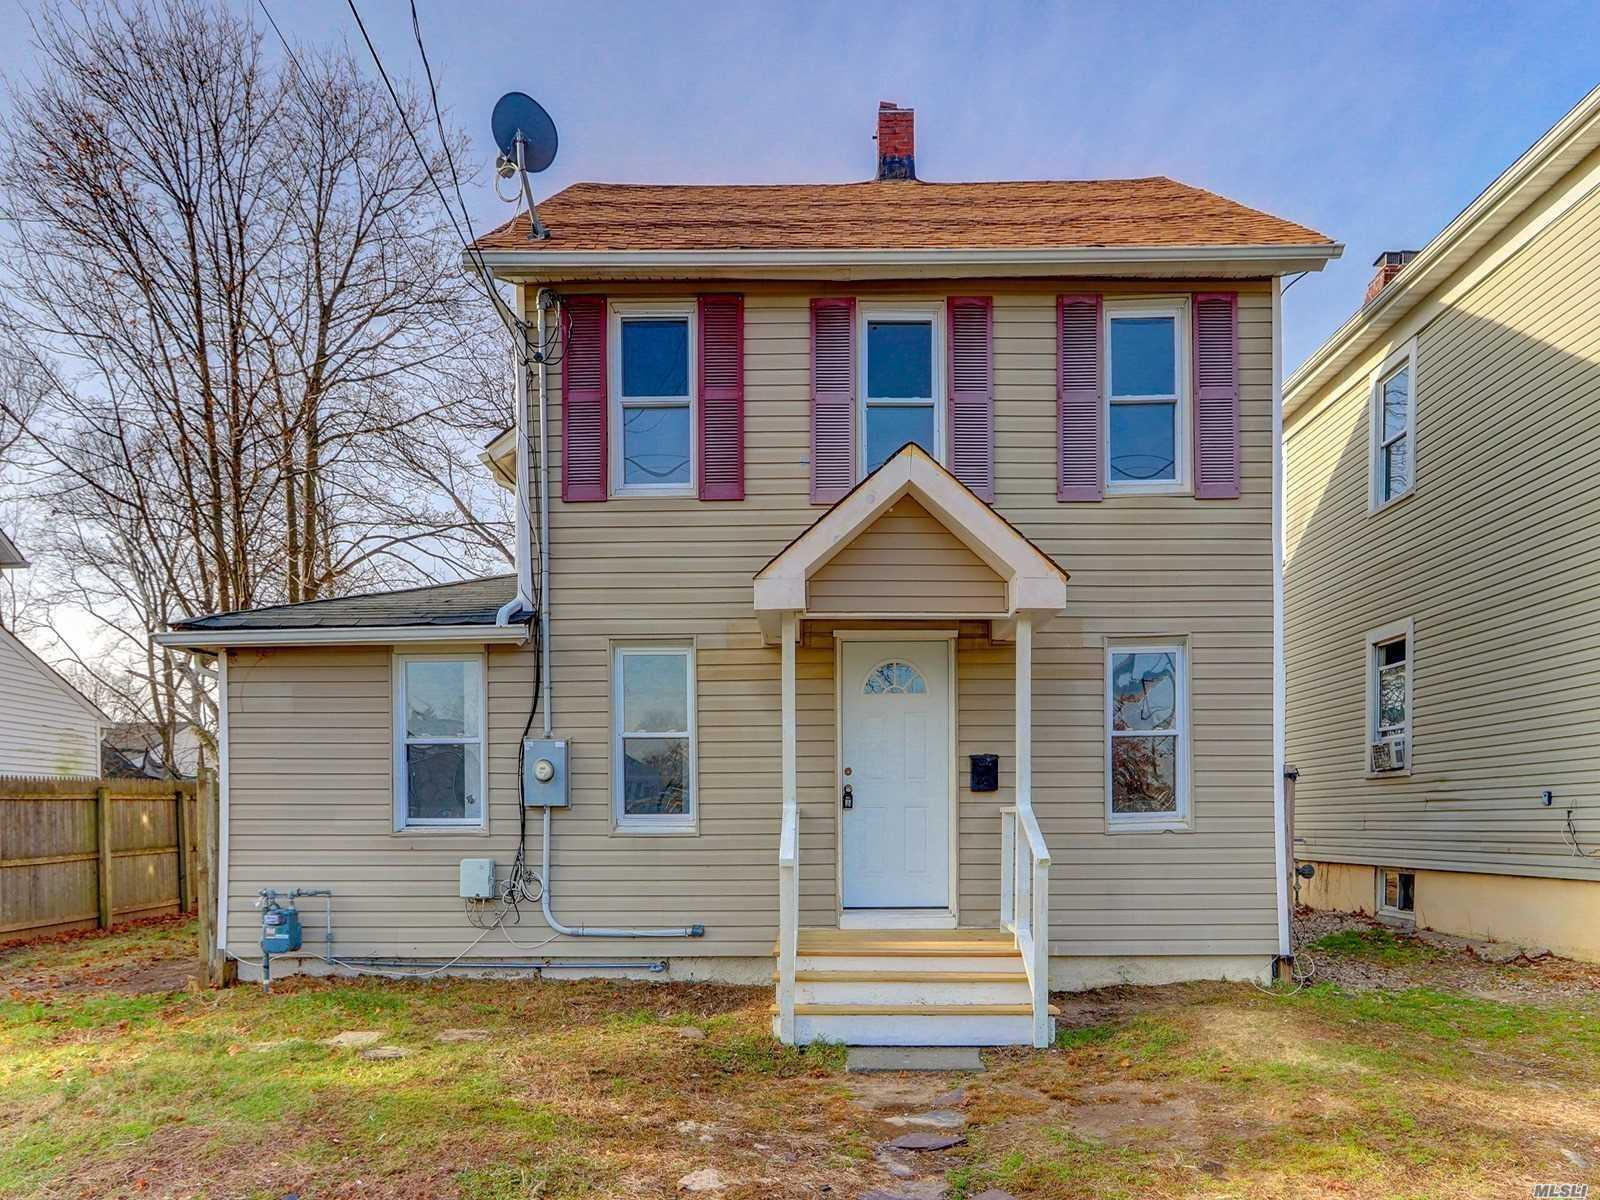 Beautifully Updated Home In The Heart Of Bay Shore. Brand New Kitchen With All Modern Touches, New Flooring, And Freshly Painted. Close To Lirr, Southside Hospital, And All Schools.